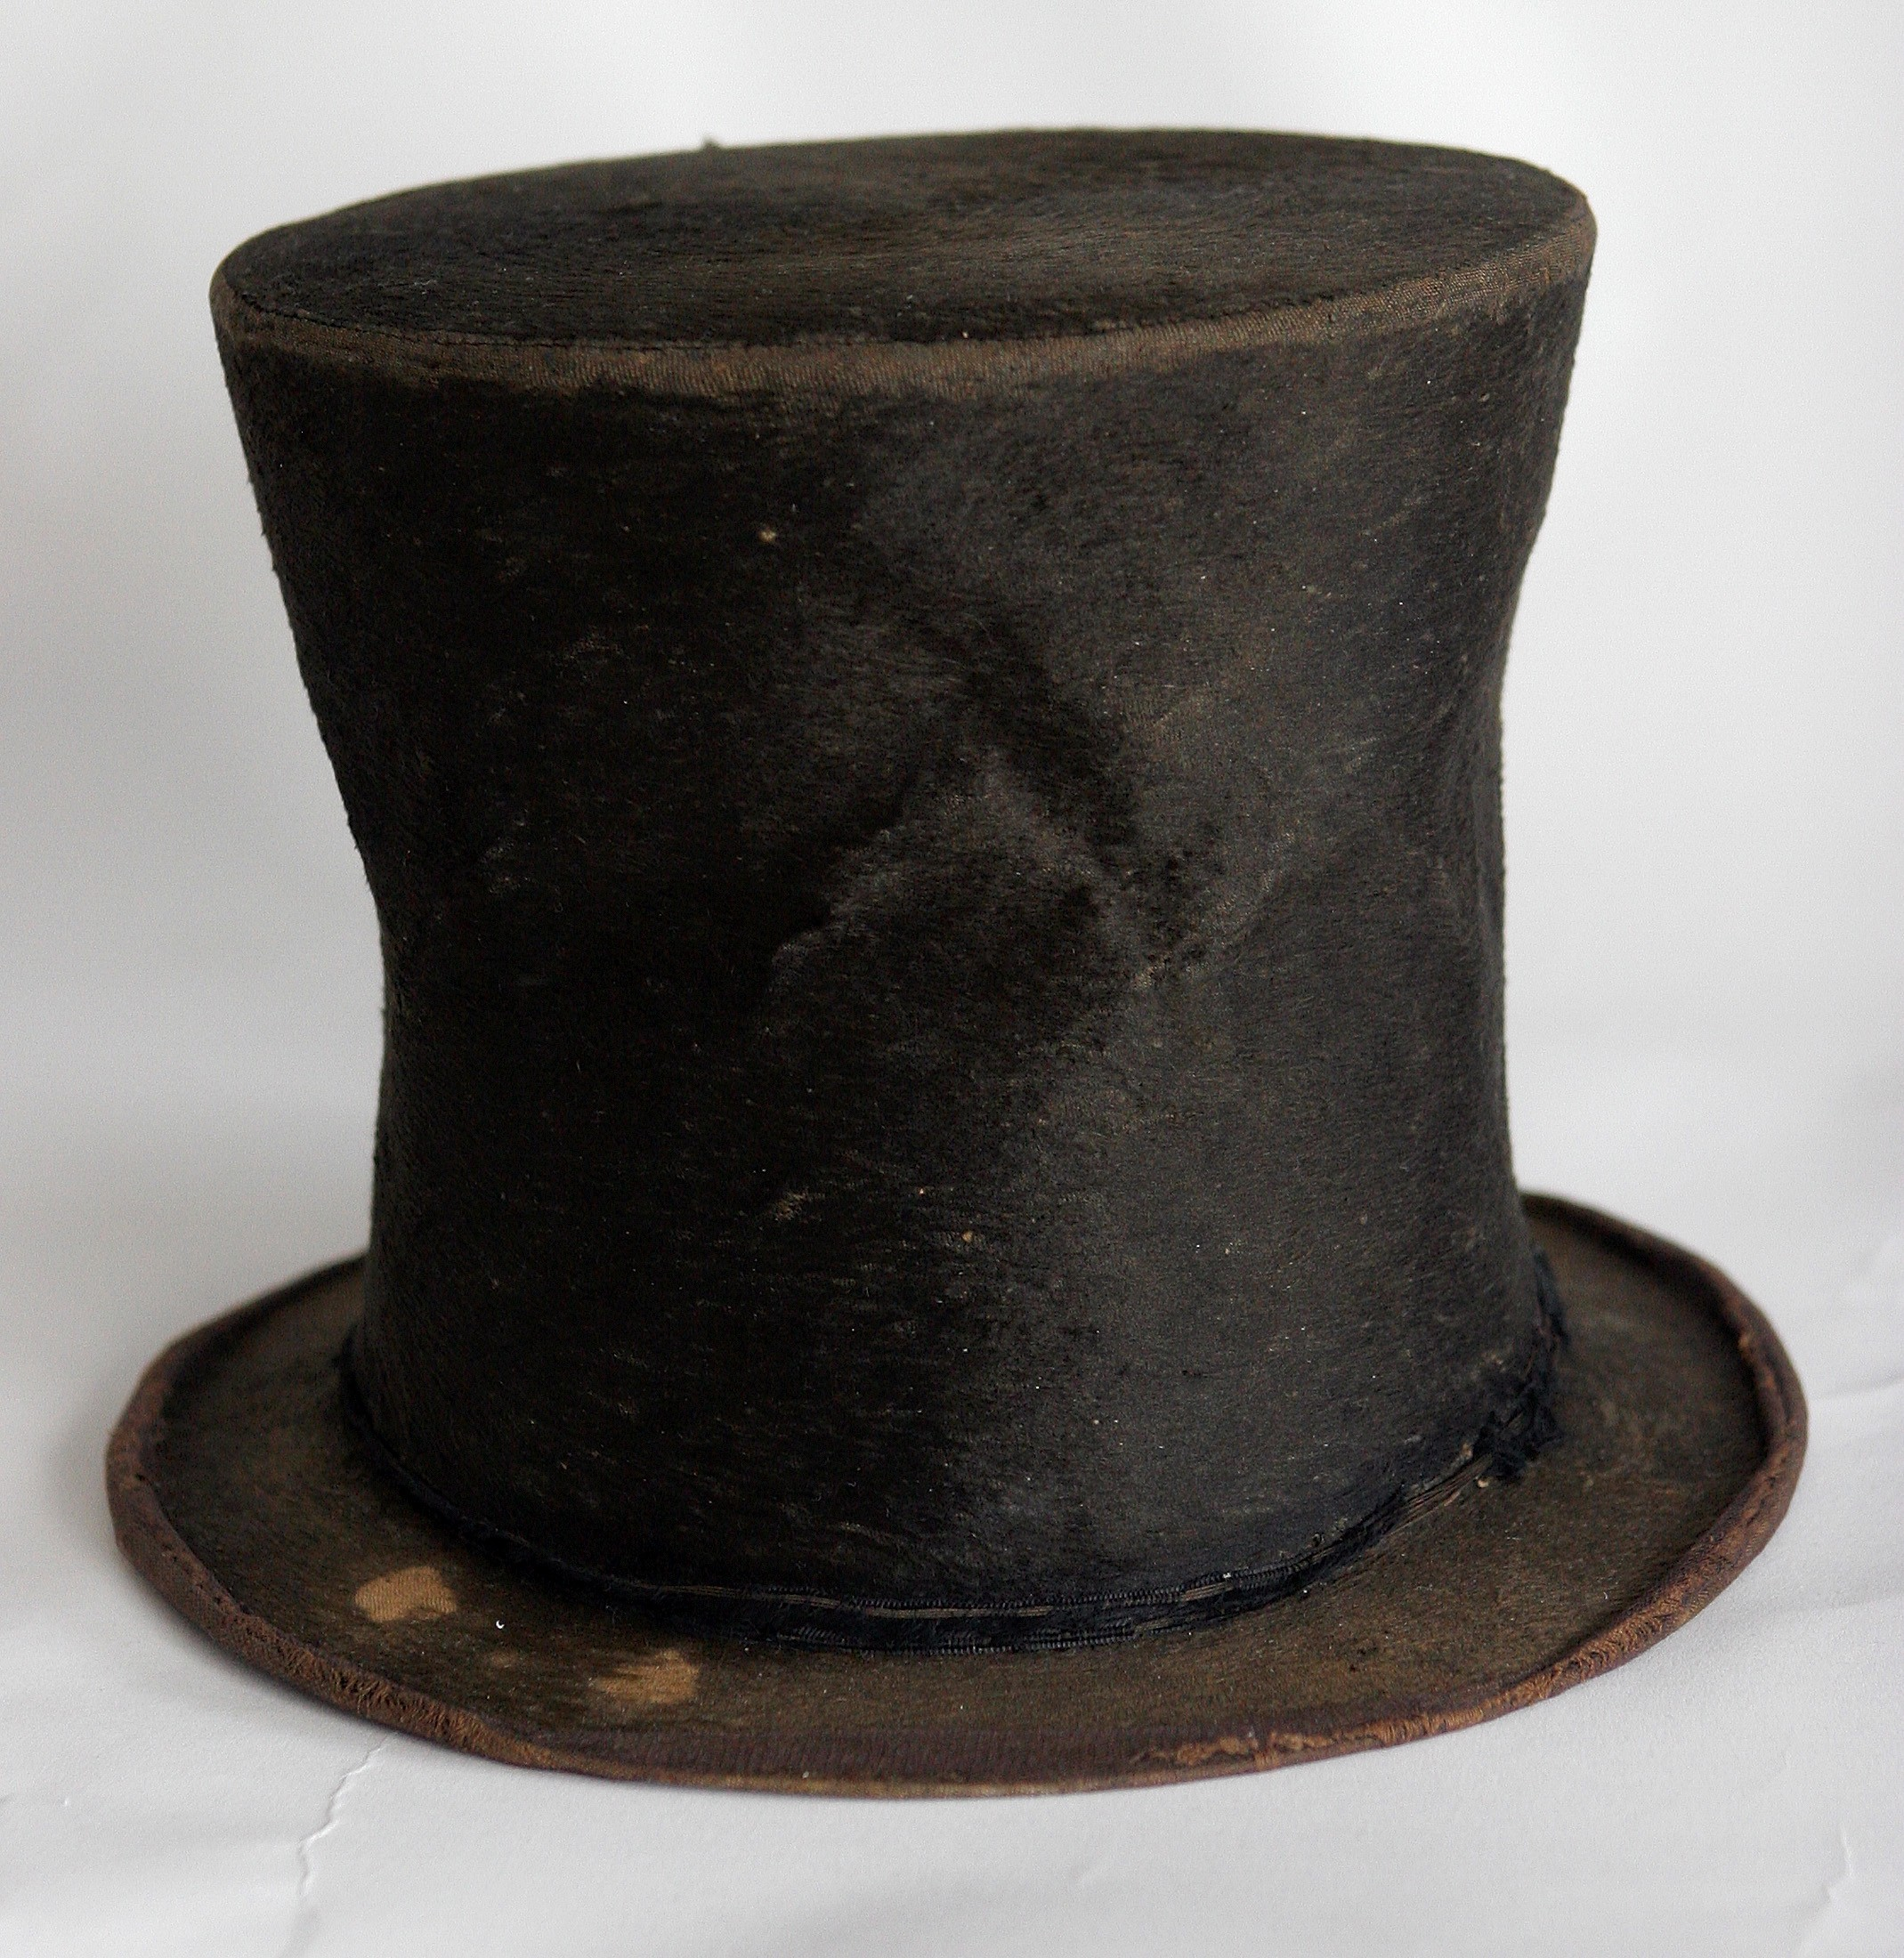 Abraham Lincoln's purported iconic stovepipe hat pictured in 2007.